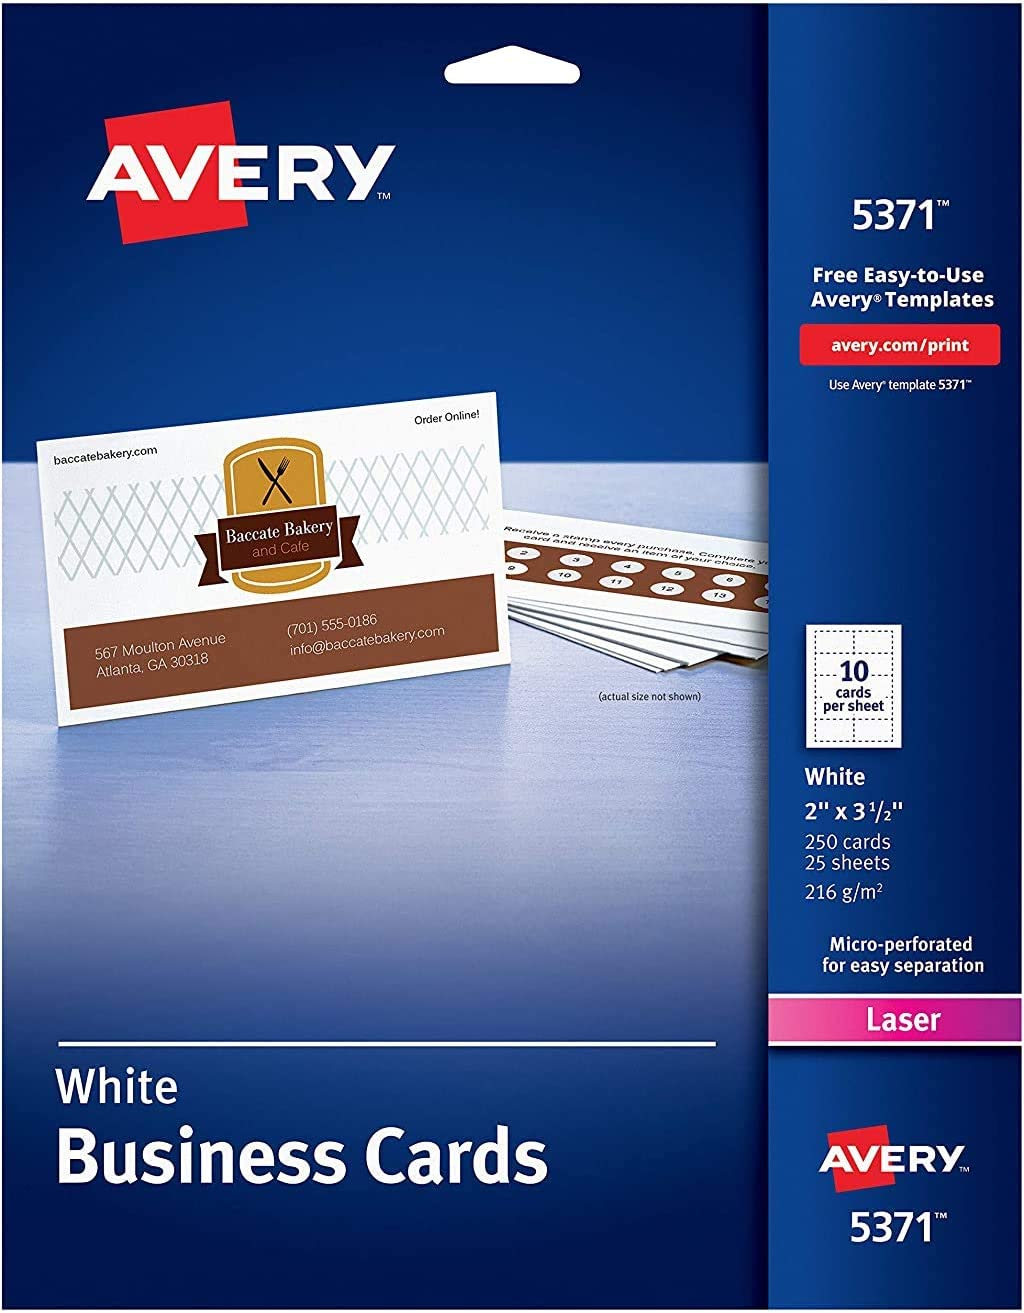 Avery Mail order cheap Uncoated Business Cards for per 250 sold out Laser Printers